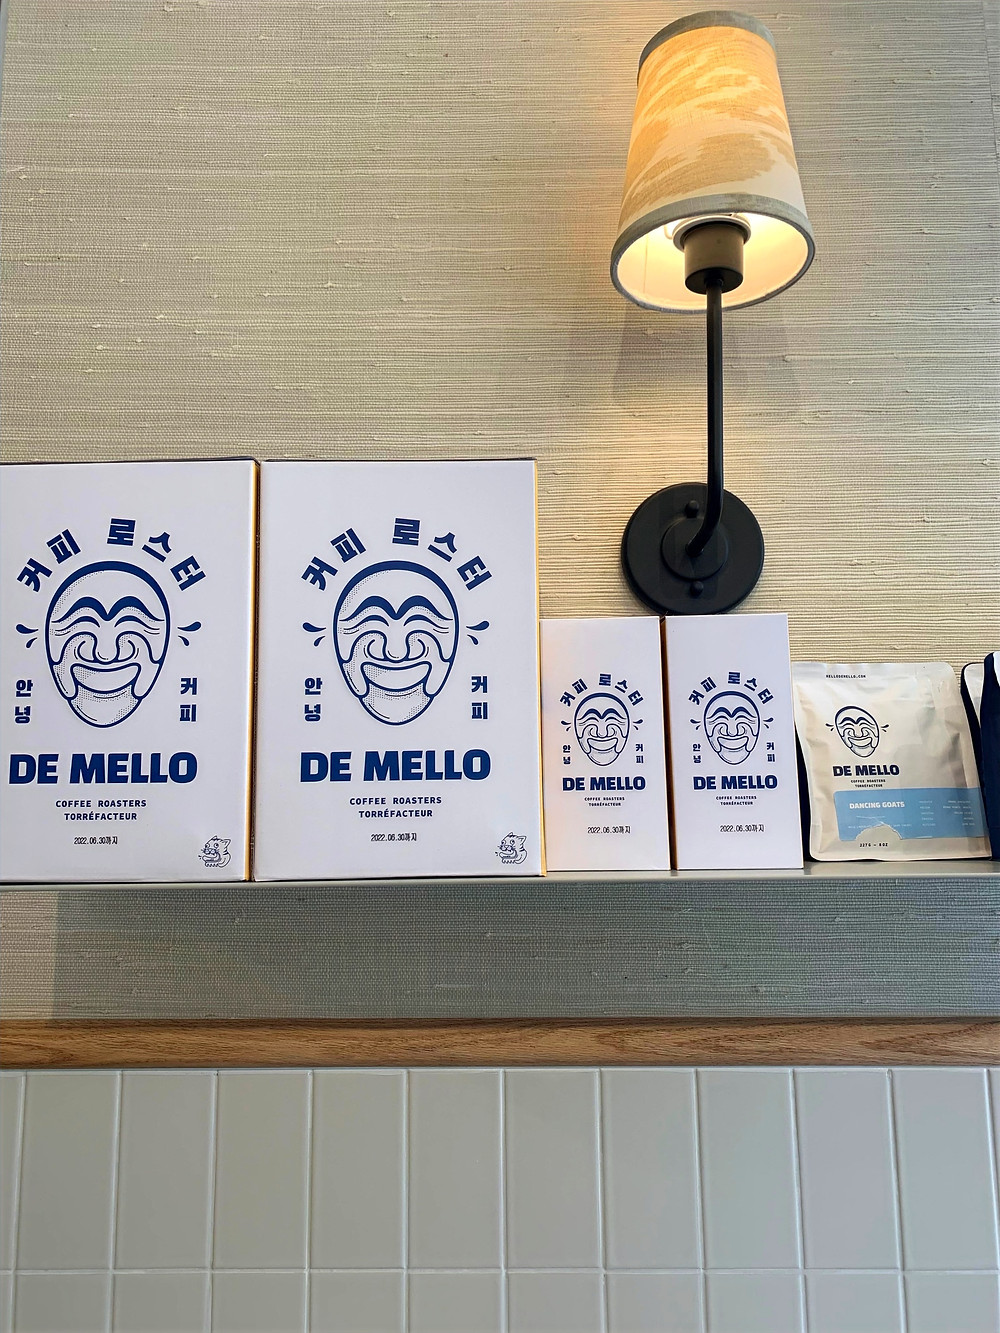 De Mello Coffee sold at new St. Clair cafe